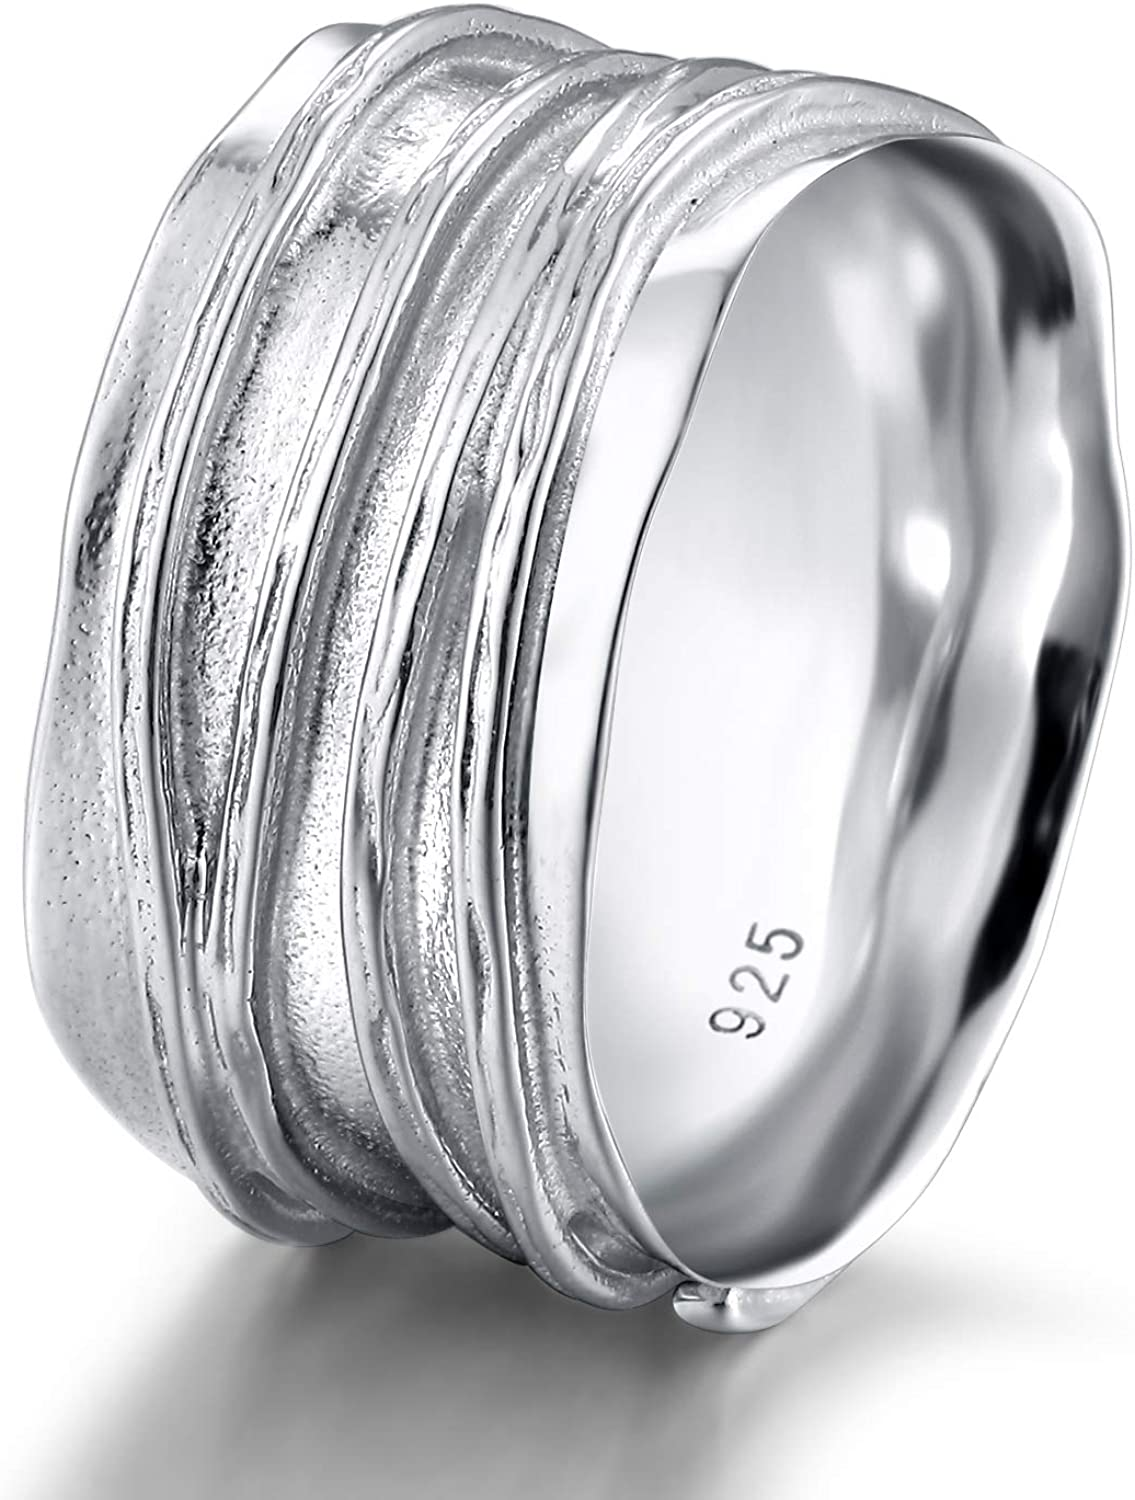 SOMEN TUNGSTEN 10mm Wide Band Ring 925 Sterling Silver Ripple Thumb Ring for Men Women Size5-12